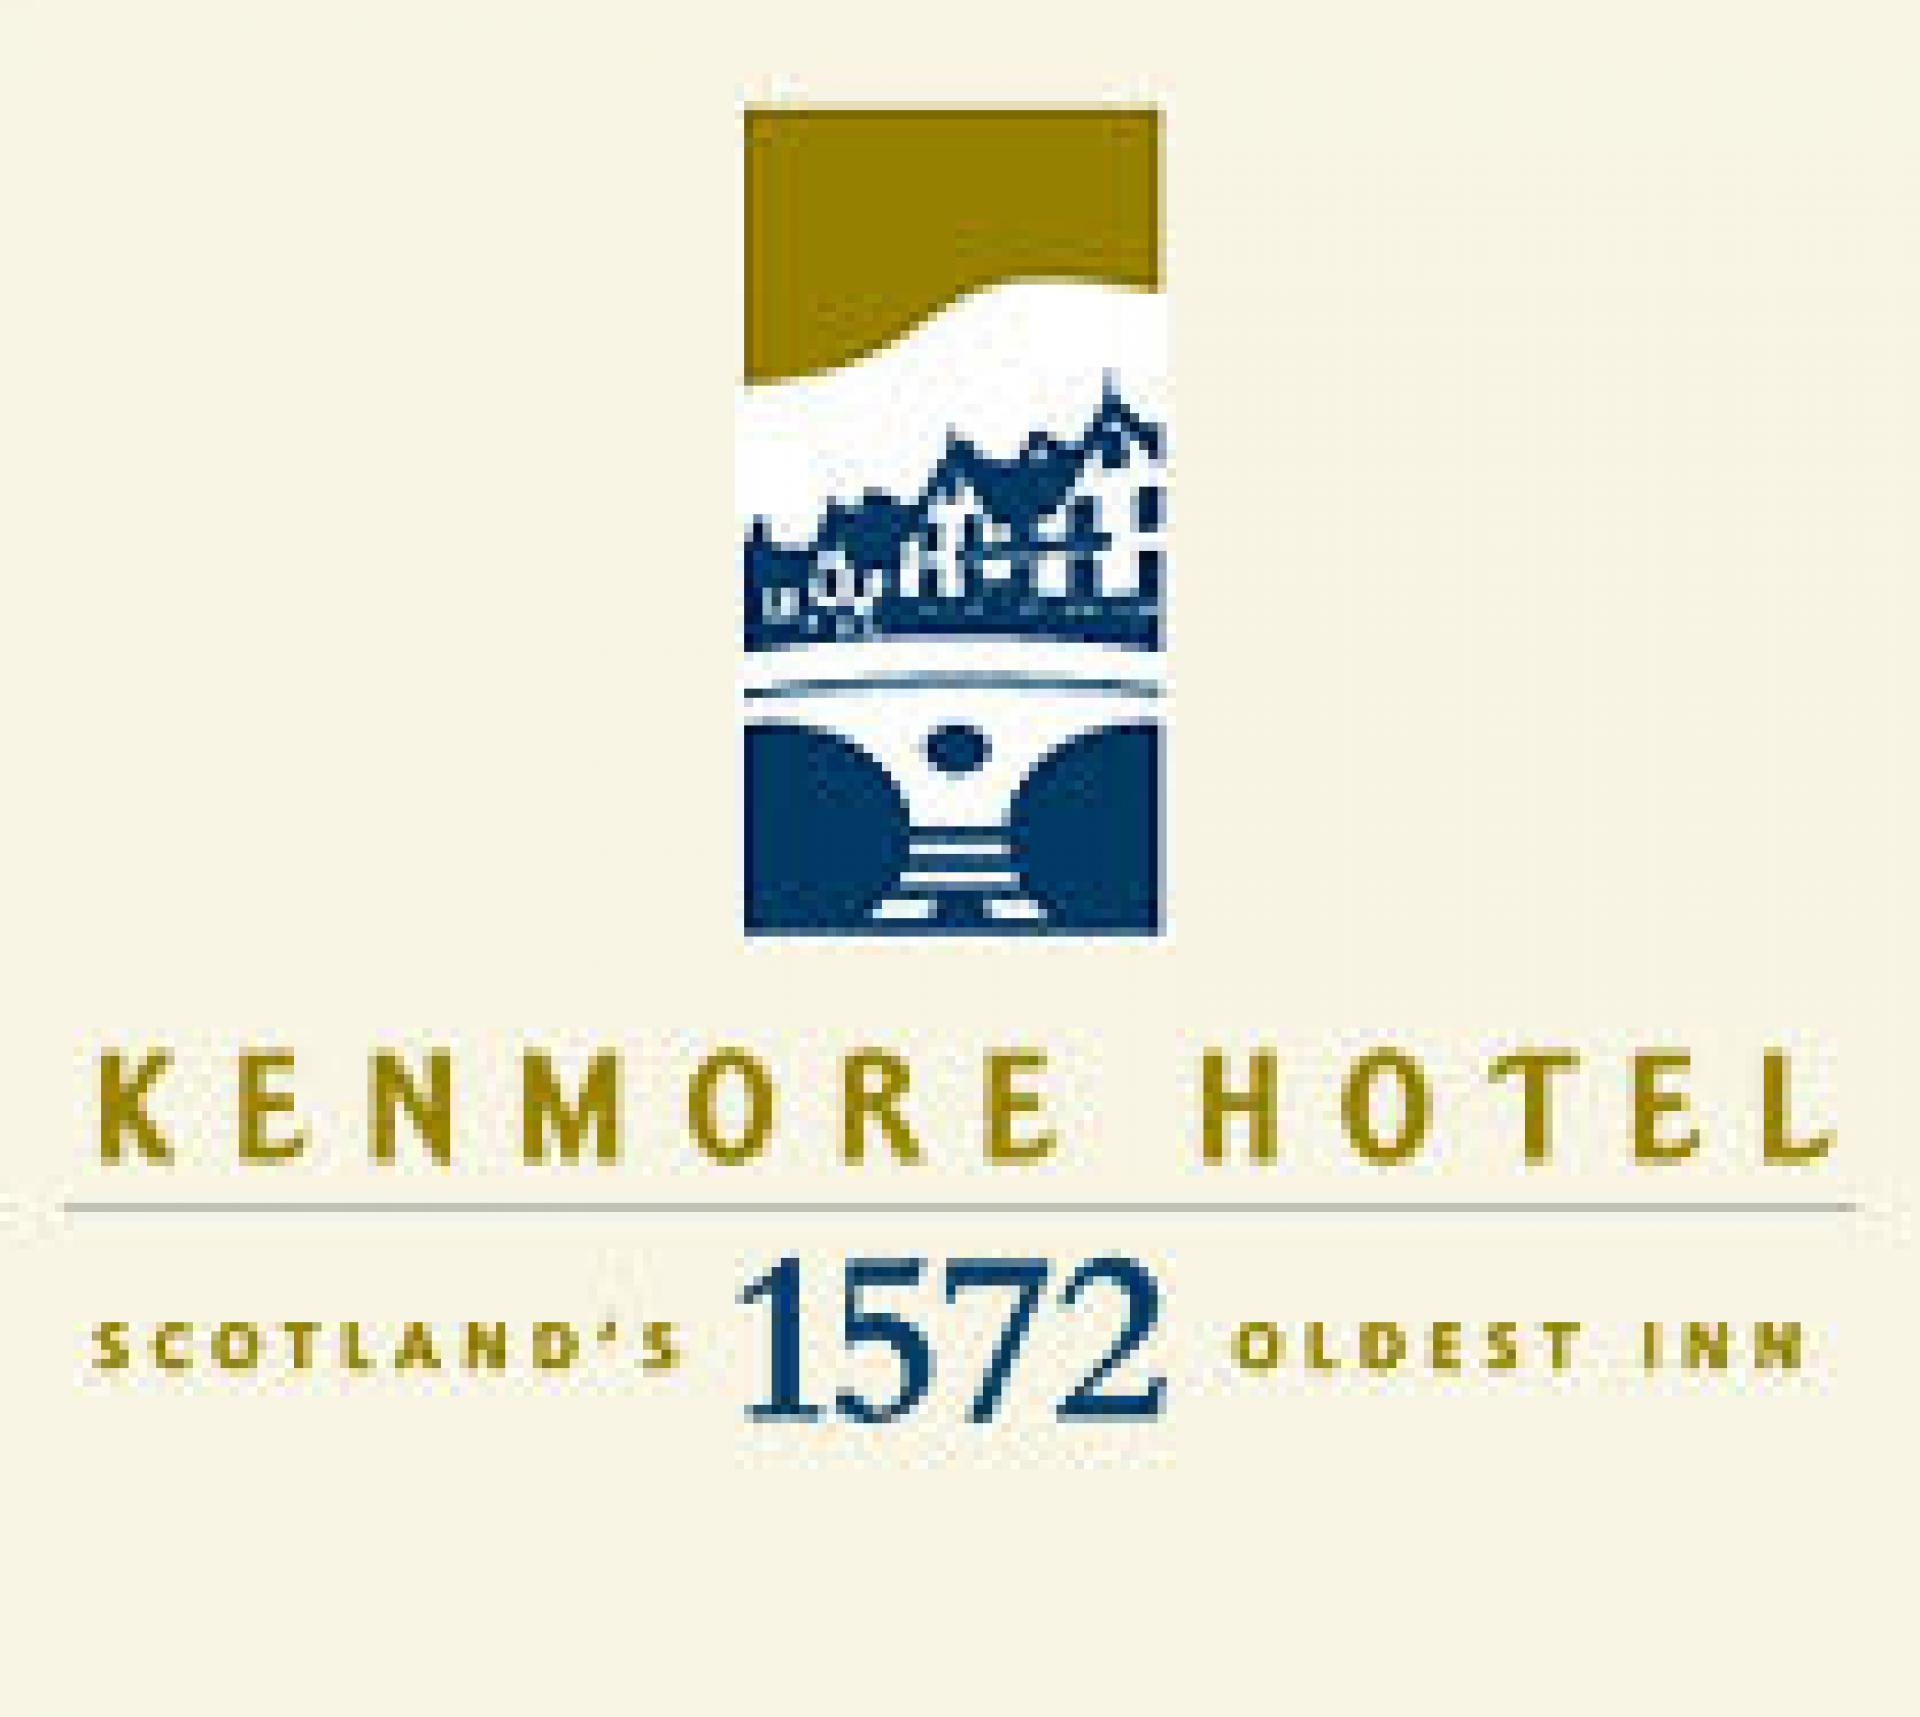 Excecutive Corporate Quiz with Kenmore Hotel